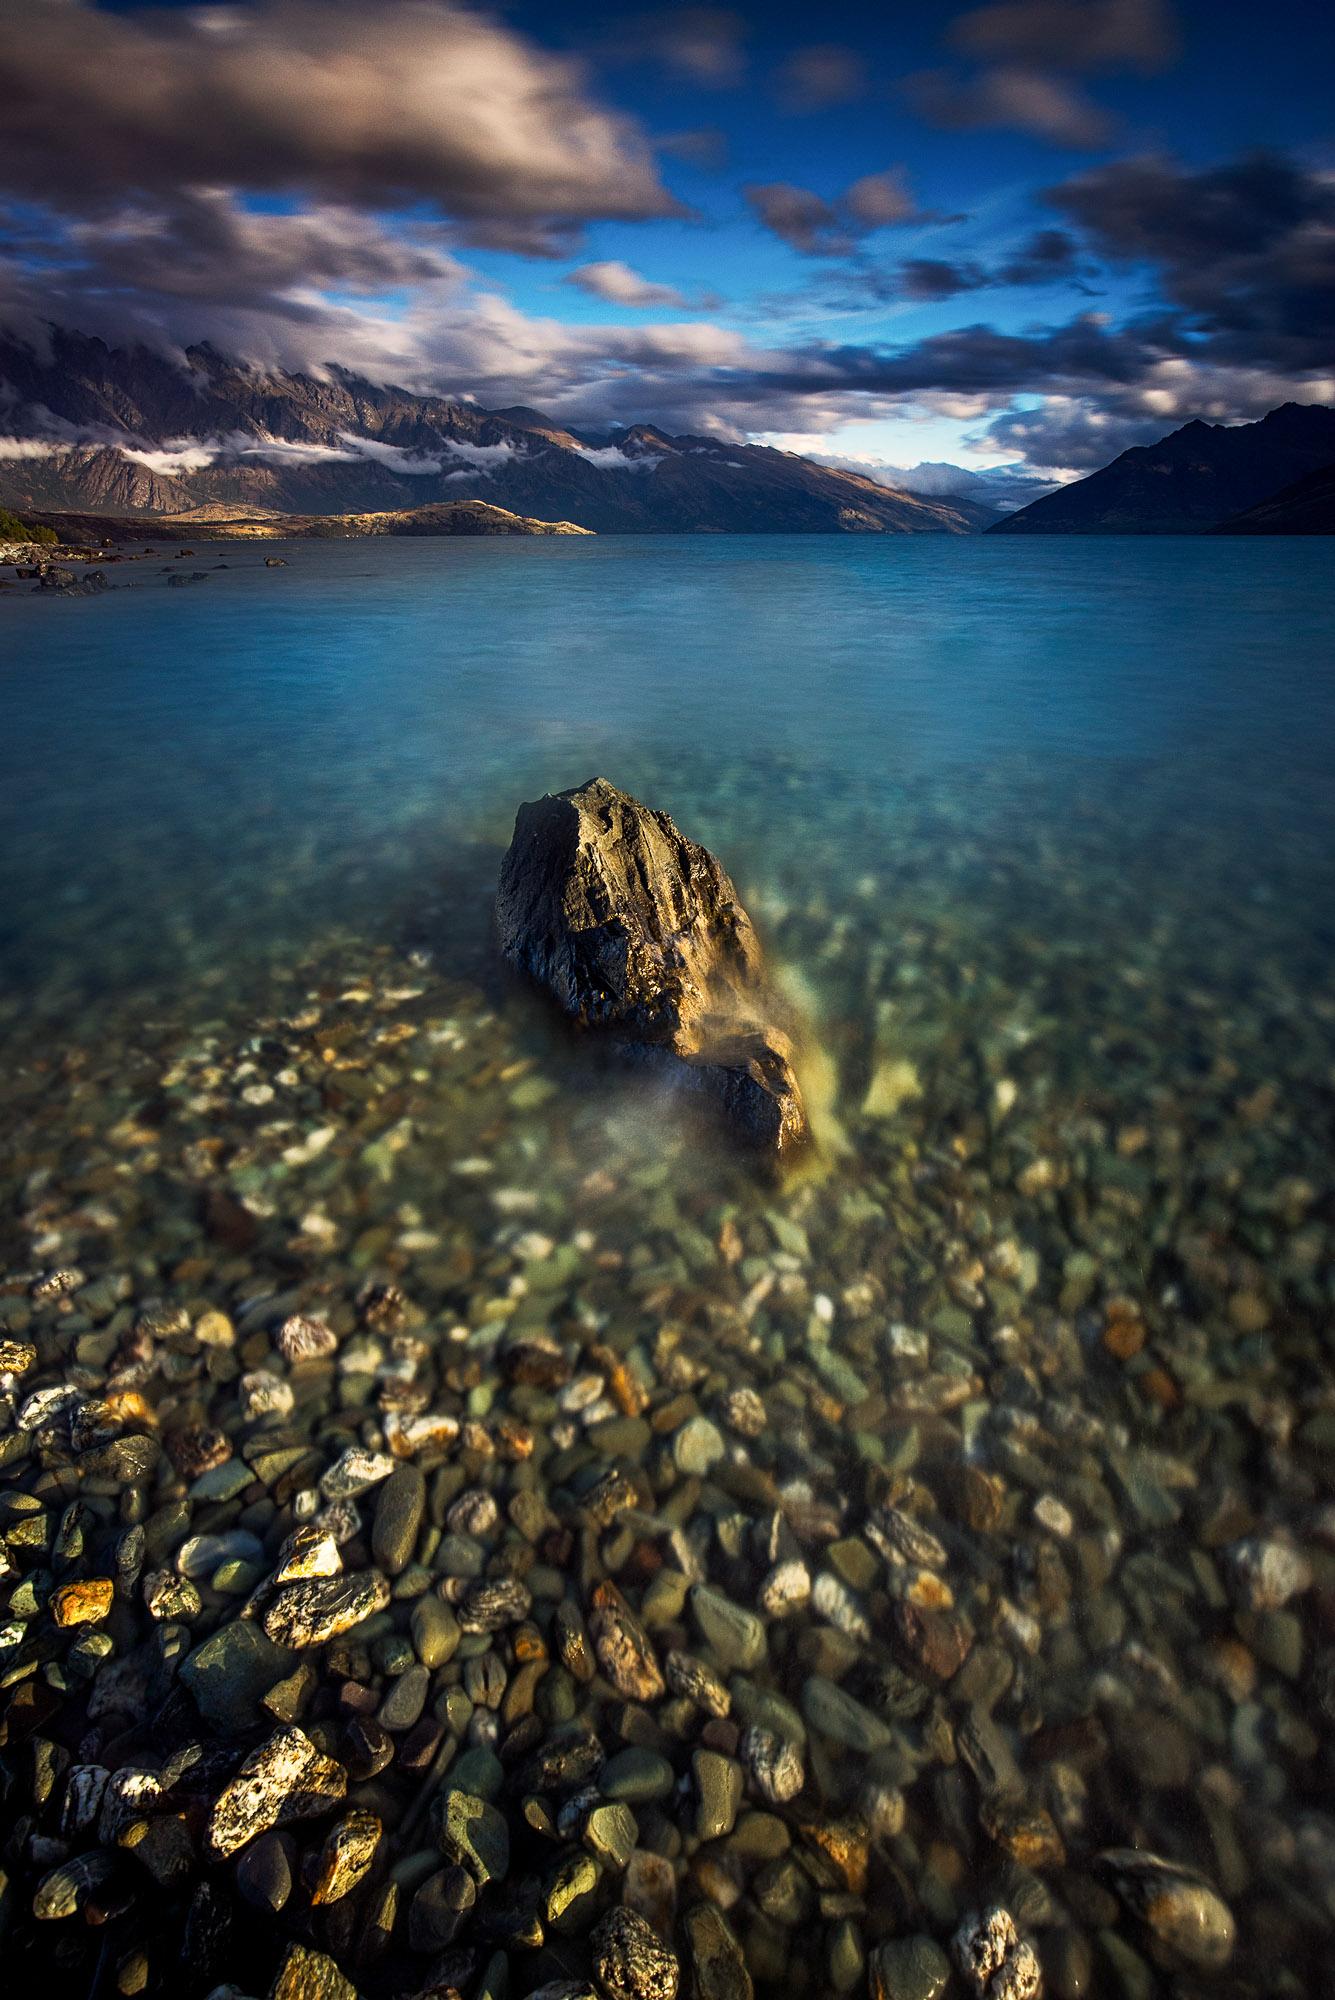 photography-workshops-queenstown-01.jpg